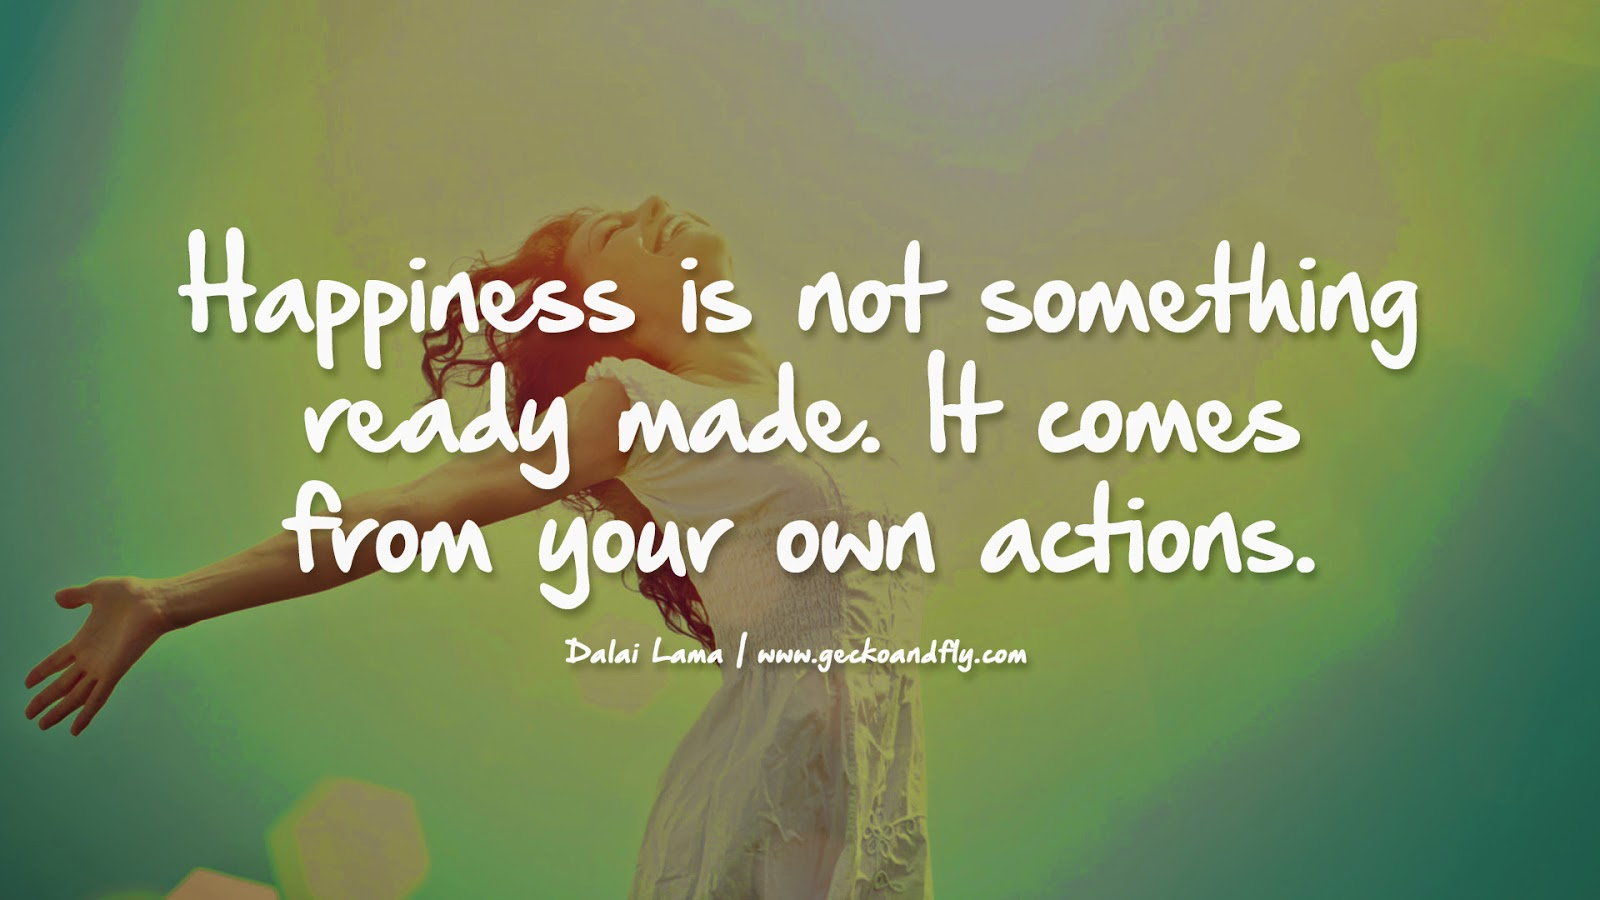 Pursuit Of Happiness Hd Wallpapers With Quotes Happyness Quotes By Great People Quotesgram